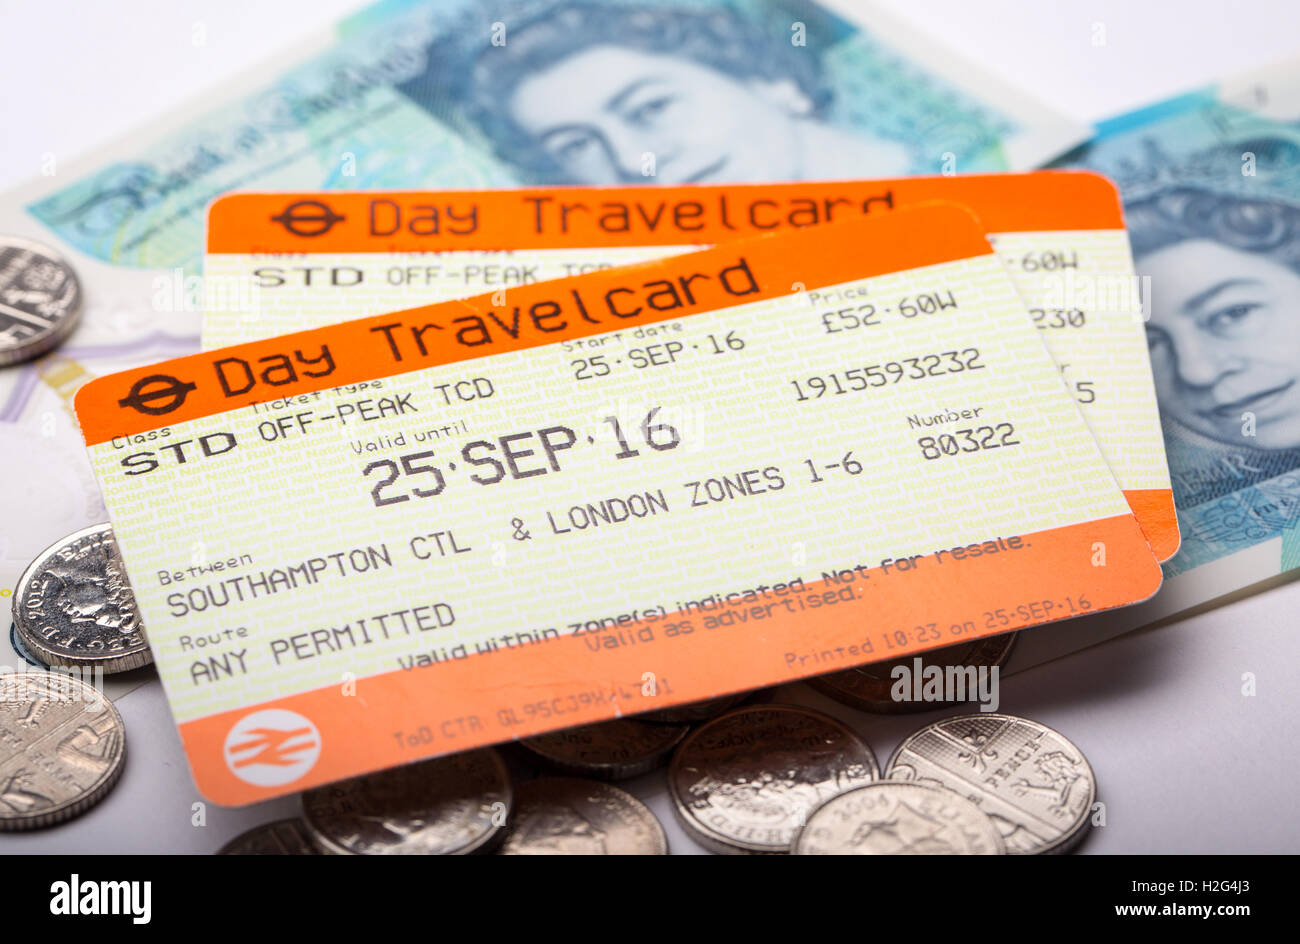 National Rail train tickets with UK money - Stock Image